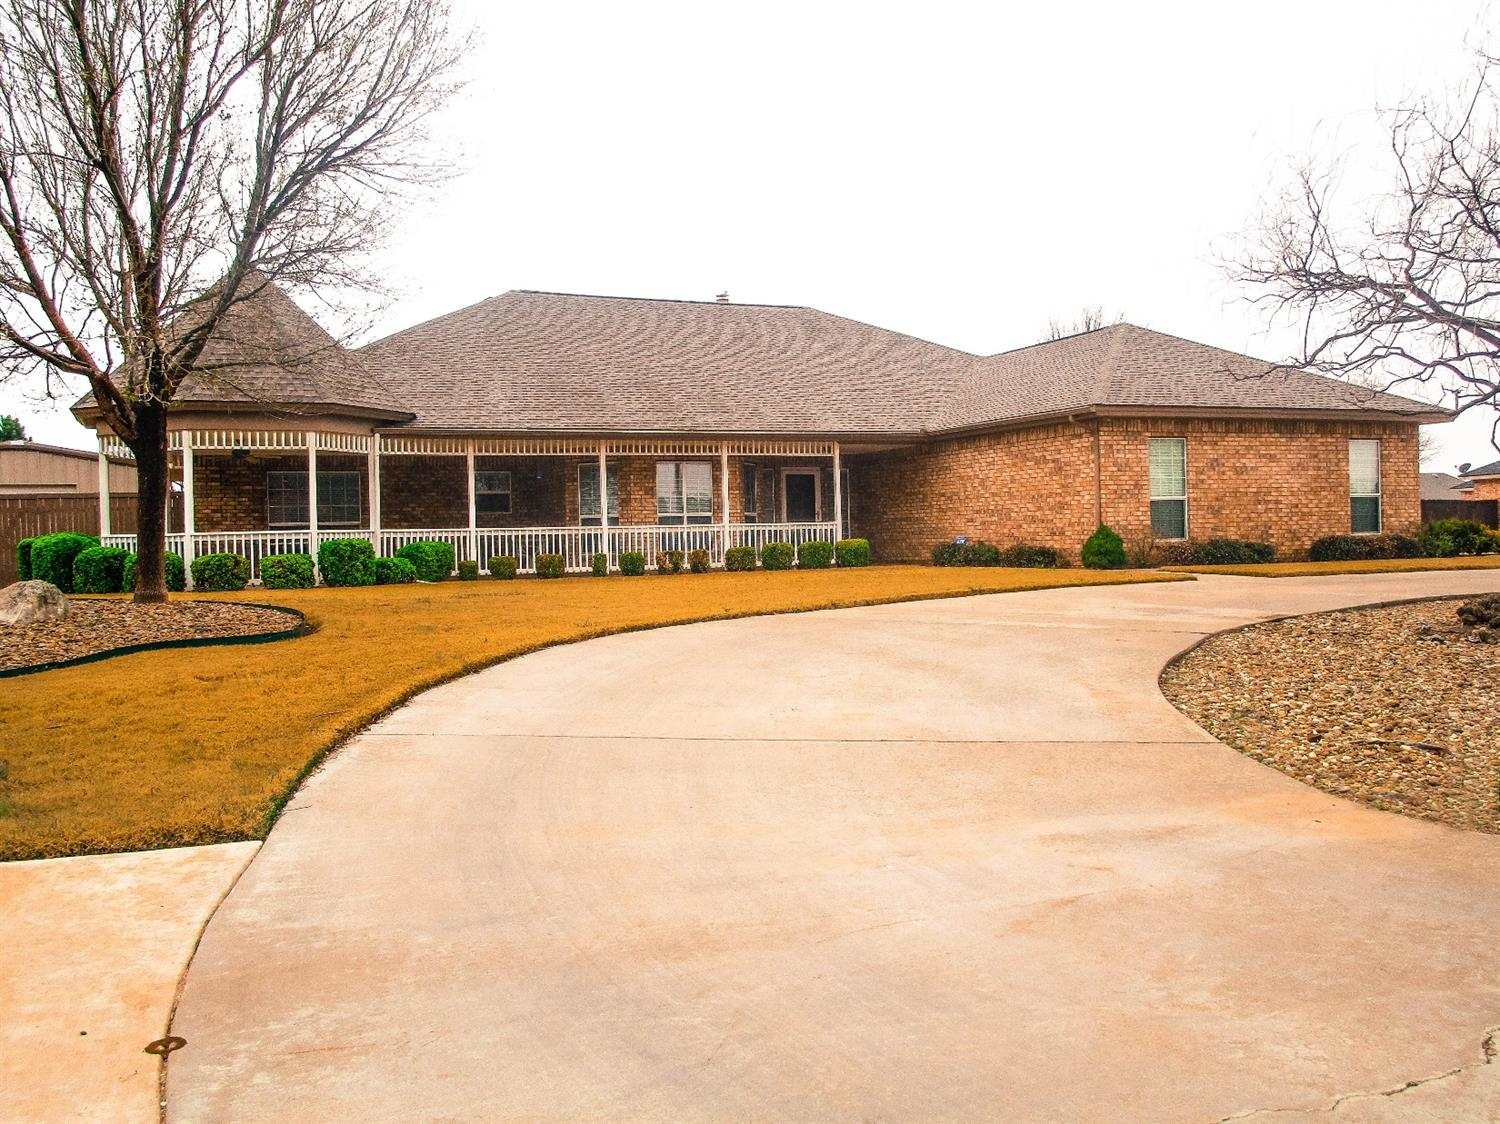 6305 County Road 7420, Lubbock in Lubbock County, TX 79424 Home for Sale